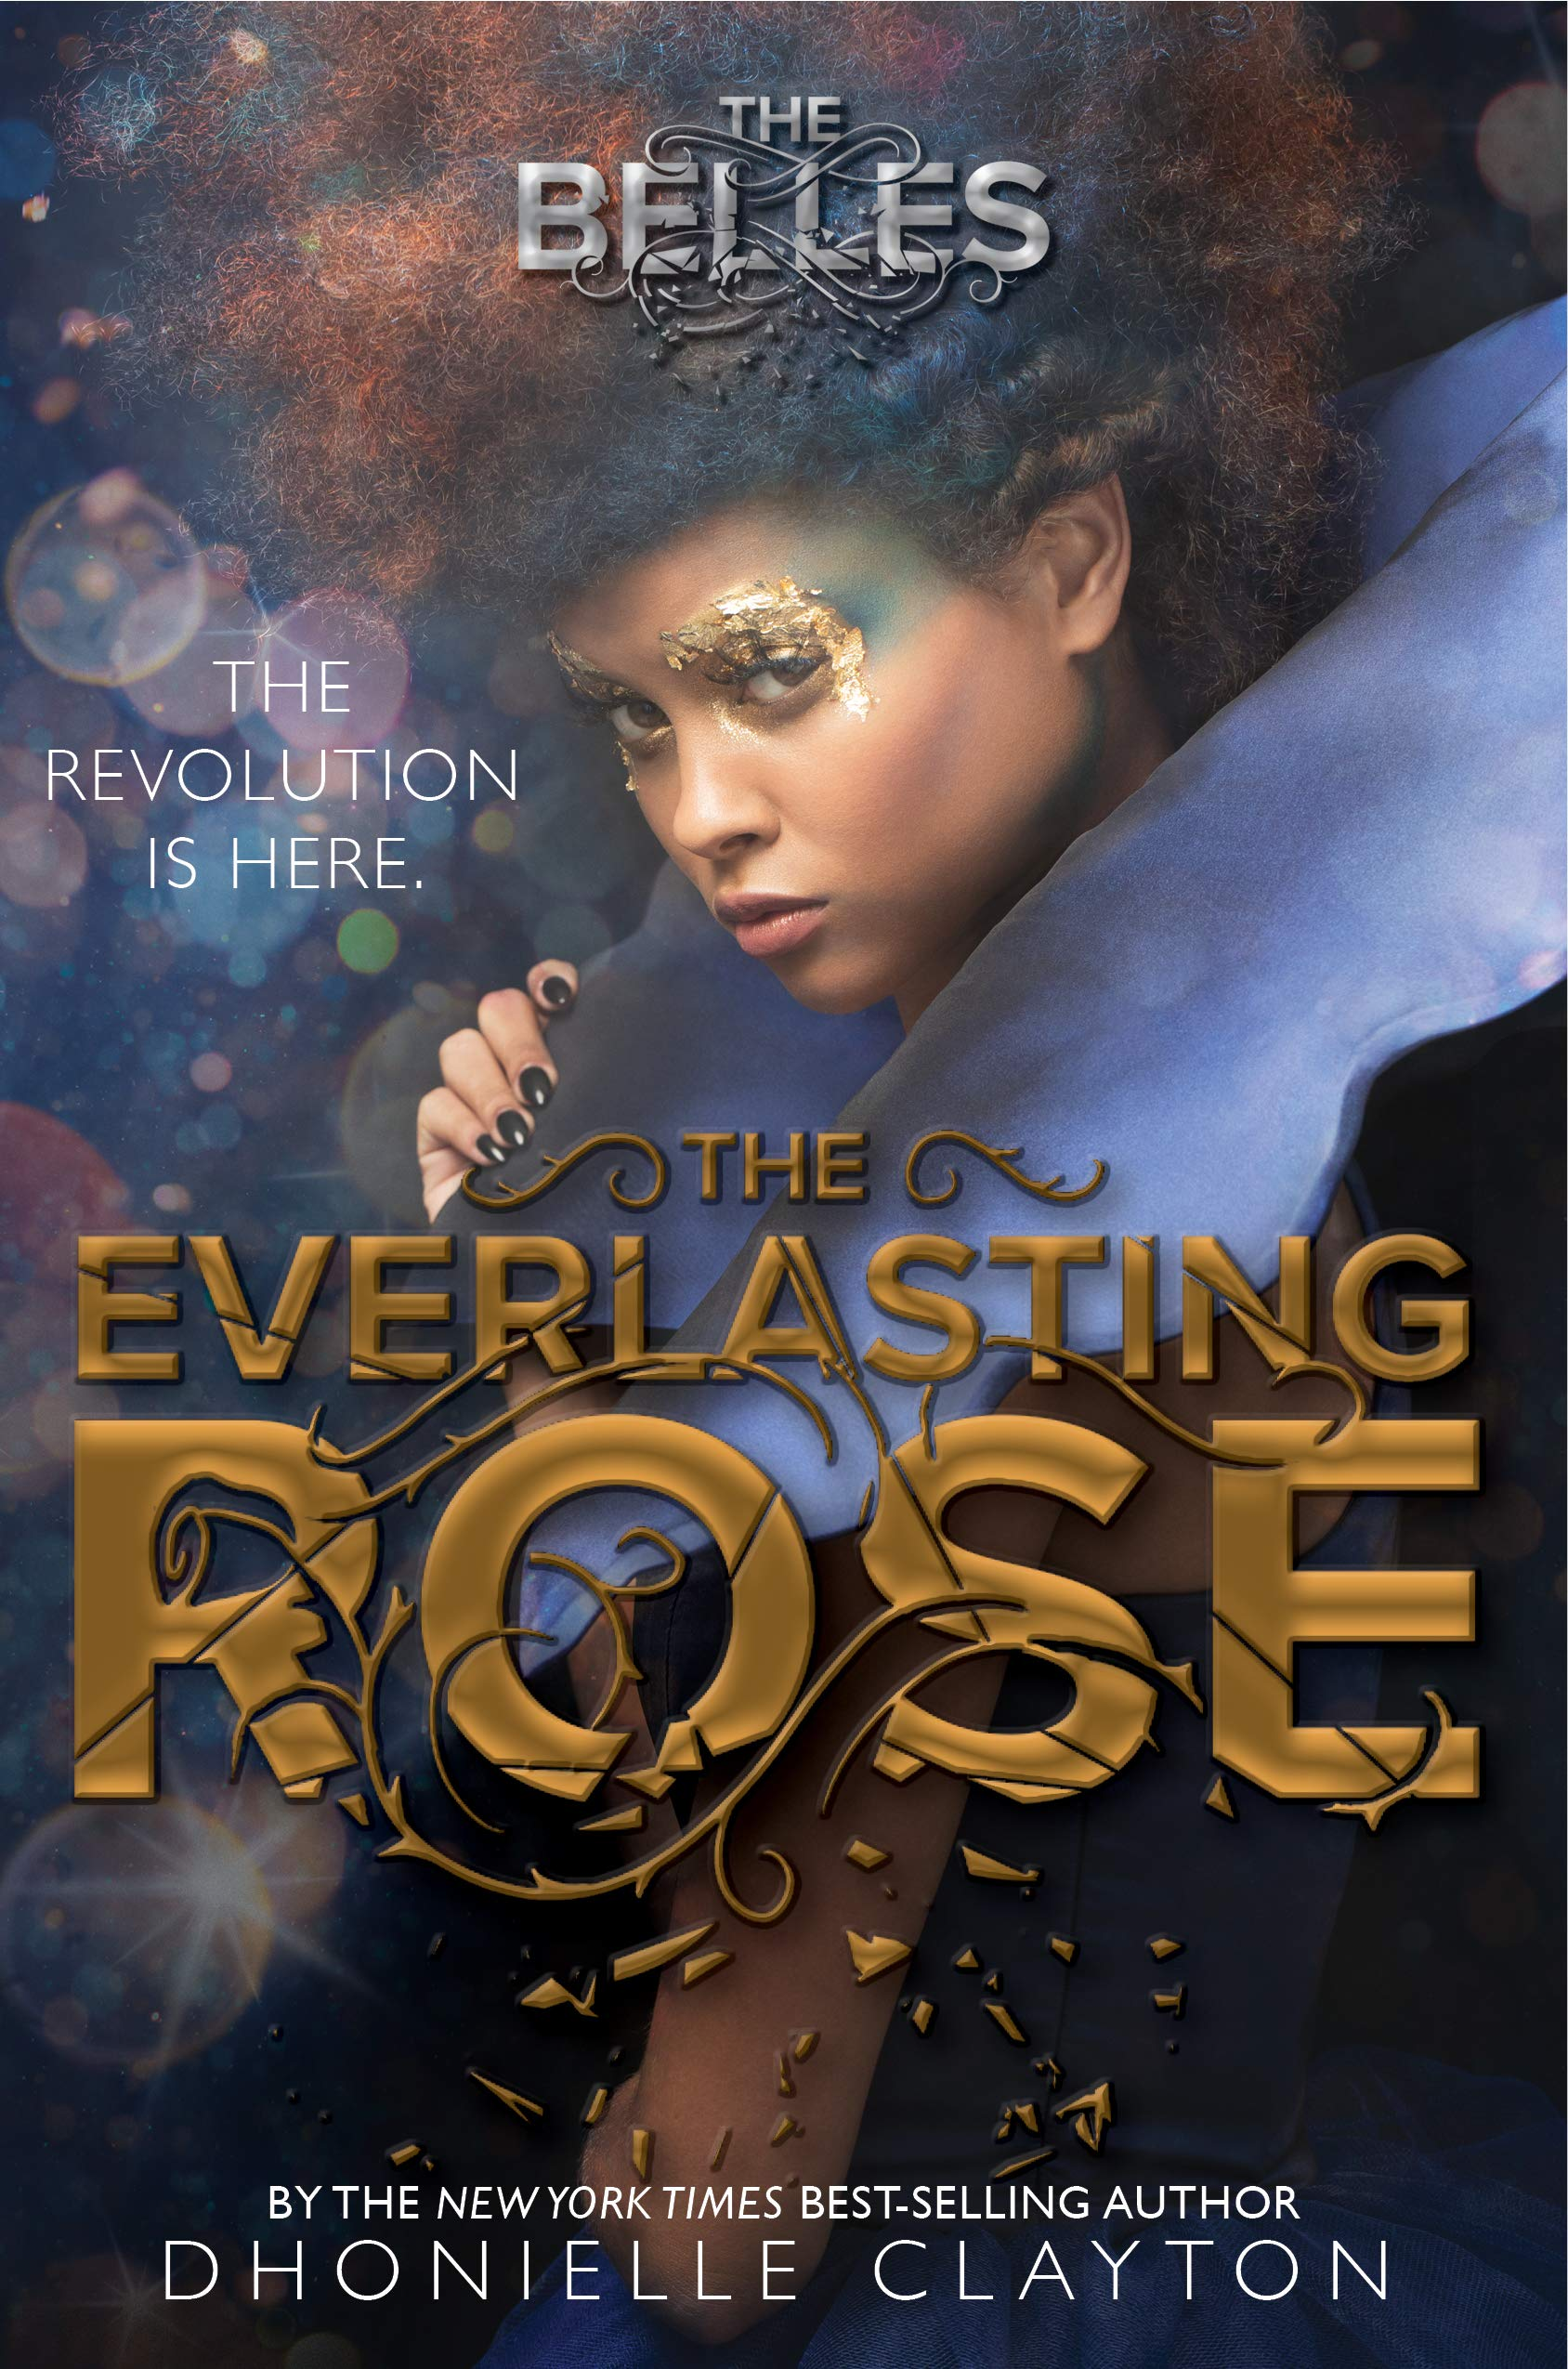 Amazon.com: The Everlasting Rose (The Belles series, Book 2) (The Belles,  2) (9781484728482): Clayton, Dhonielle: Books